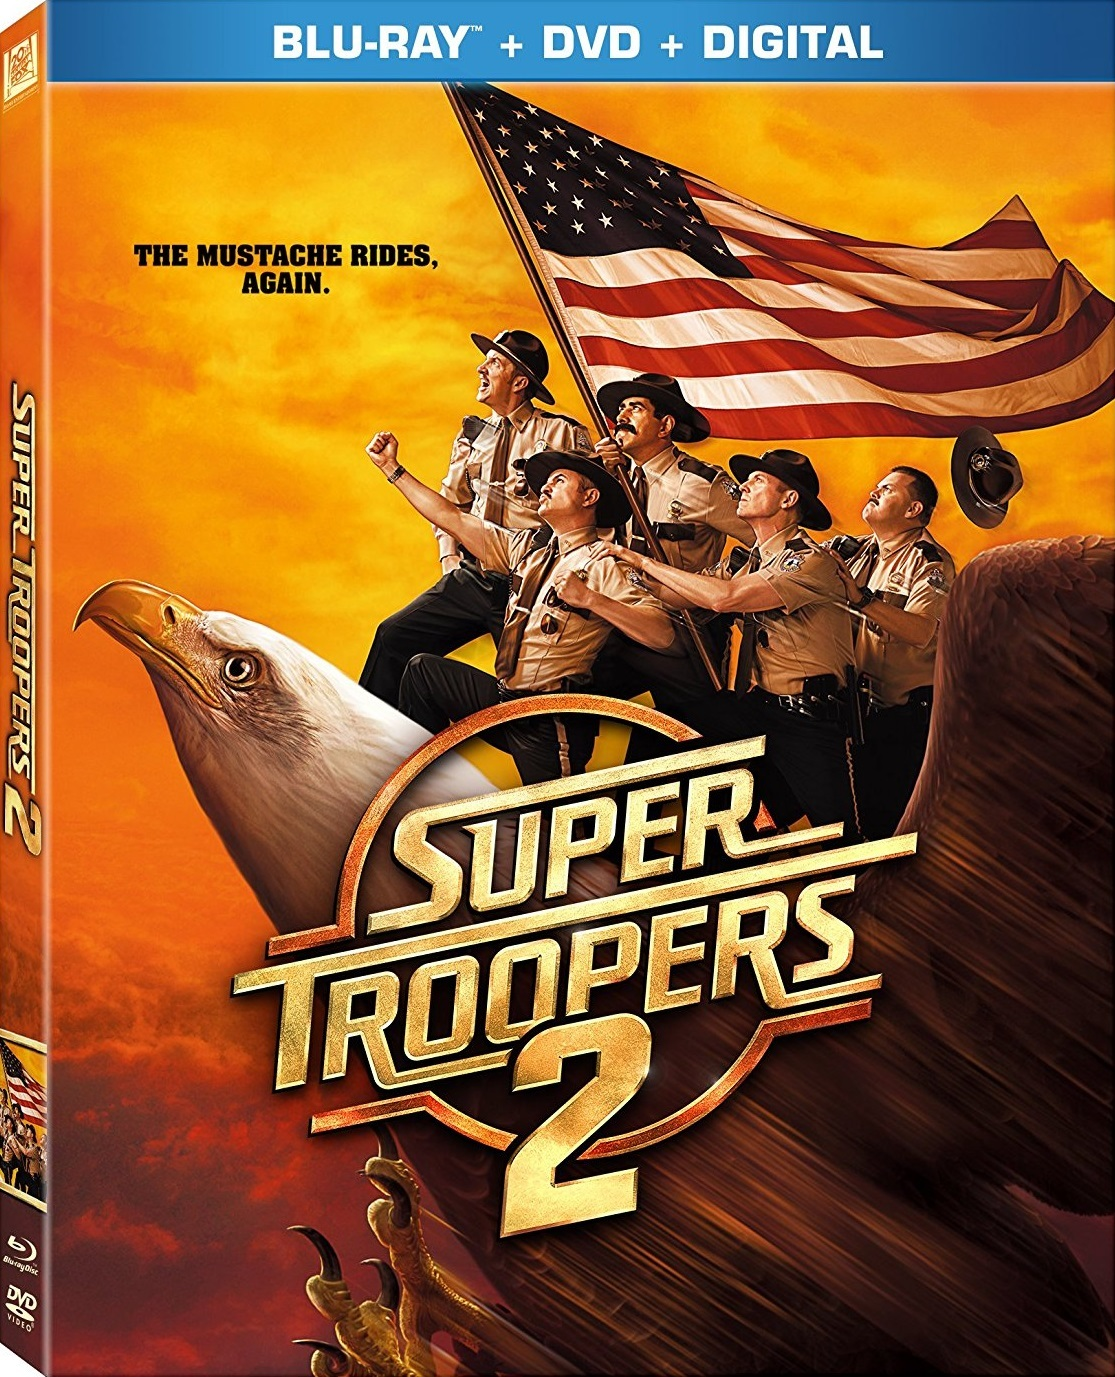 Super Troopers 2 (2018) Blu-ray